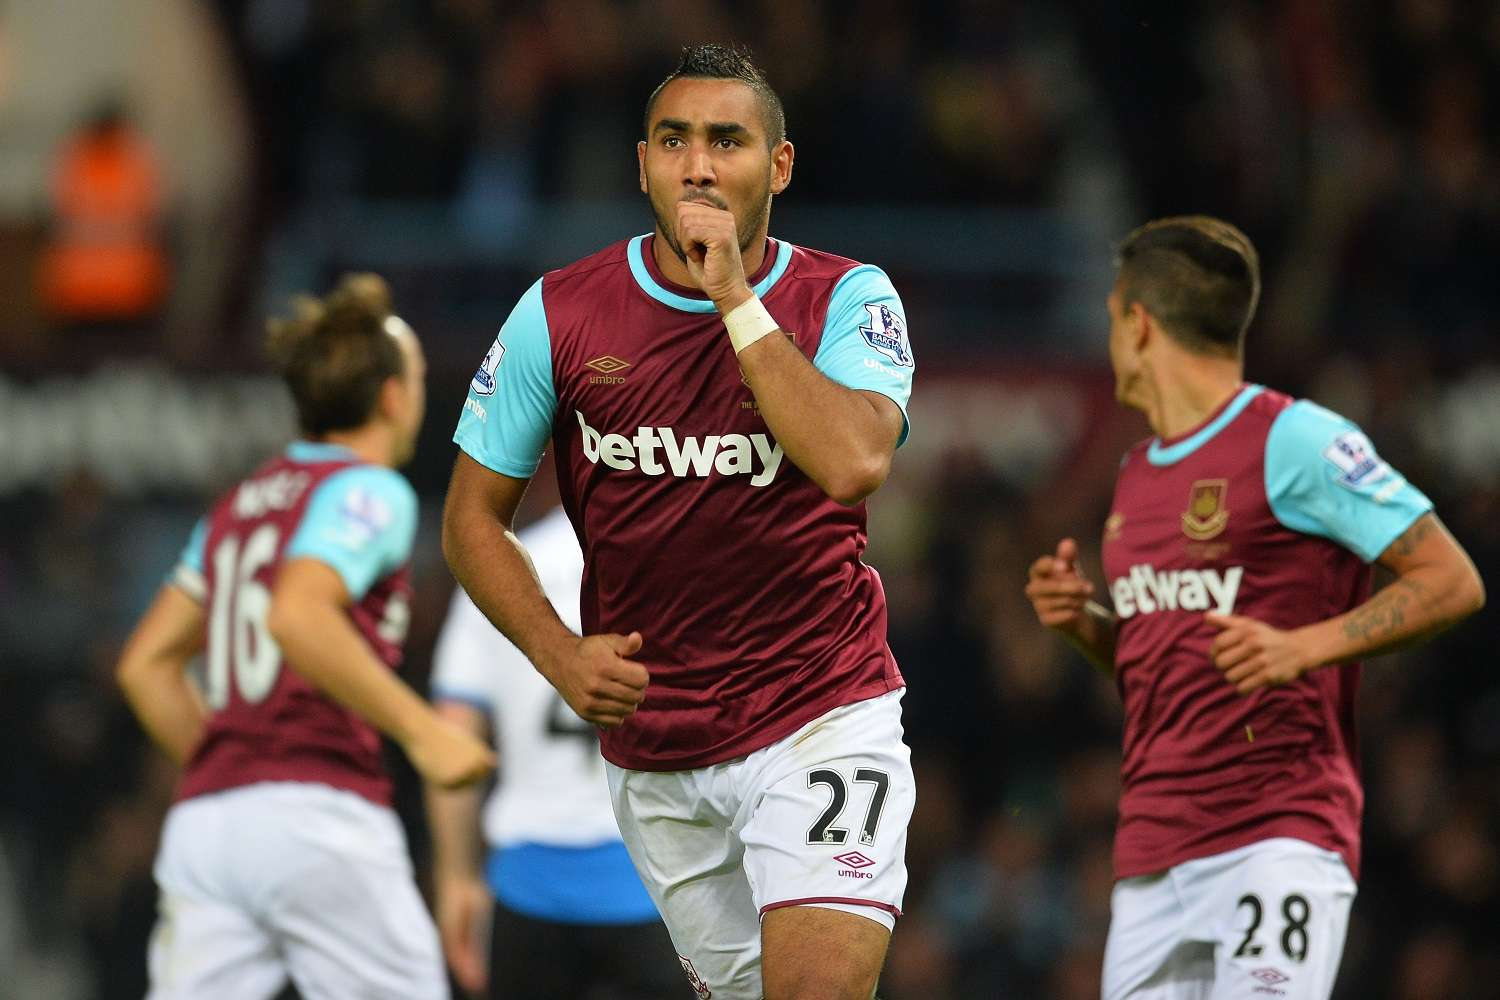 West Ham United's French midfielder Dimitri Payet celebrates scoring his second goal during the English Premier League football match between West Ham United and Newcastle United at The Boleyn Ground in Upton Park, East London on September 14, 2015.   AFP PHOTO / GLYN KIRK RESTRICTED TO EDITORIAL USE. NO USE WITH UNAUTHORIZED AUDIO, VIDEO, DATA, FIXTURE LISTS, CLUB/LEAGUE LOGOS OR 'LIVE' SERVICES. ONLINE IN-MATCH USE LIMITED TO 75 IMAGES, NO VIDEO EMULATION. NO USE IN BETTING, GAMES OR SINGLE CLUB/LEAGUE/PLAYER PUBLICATIONS.        (Photo credit should read GLYN KIRK/AFP/Getty Images)